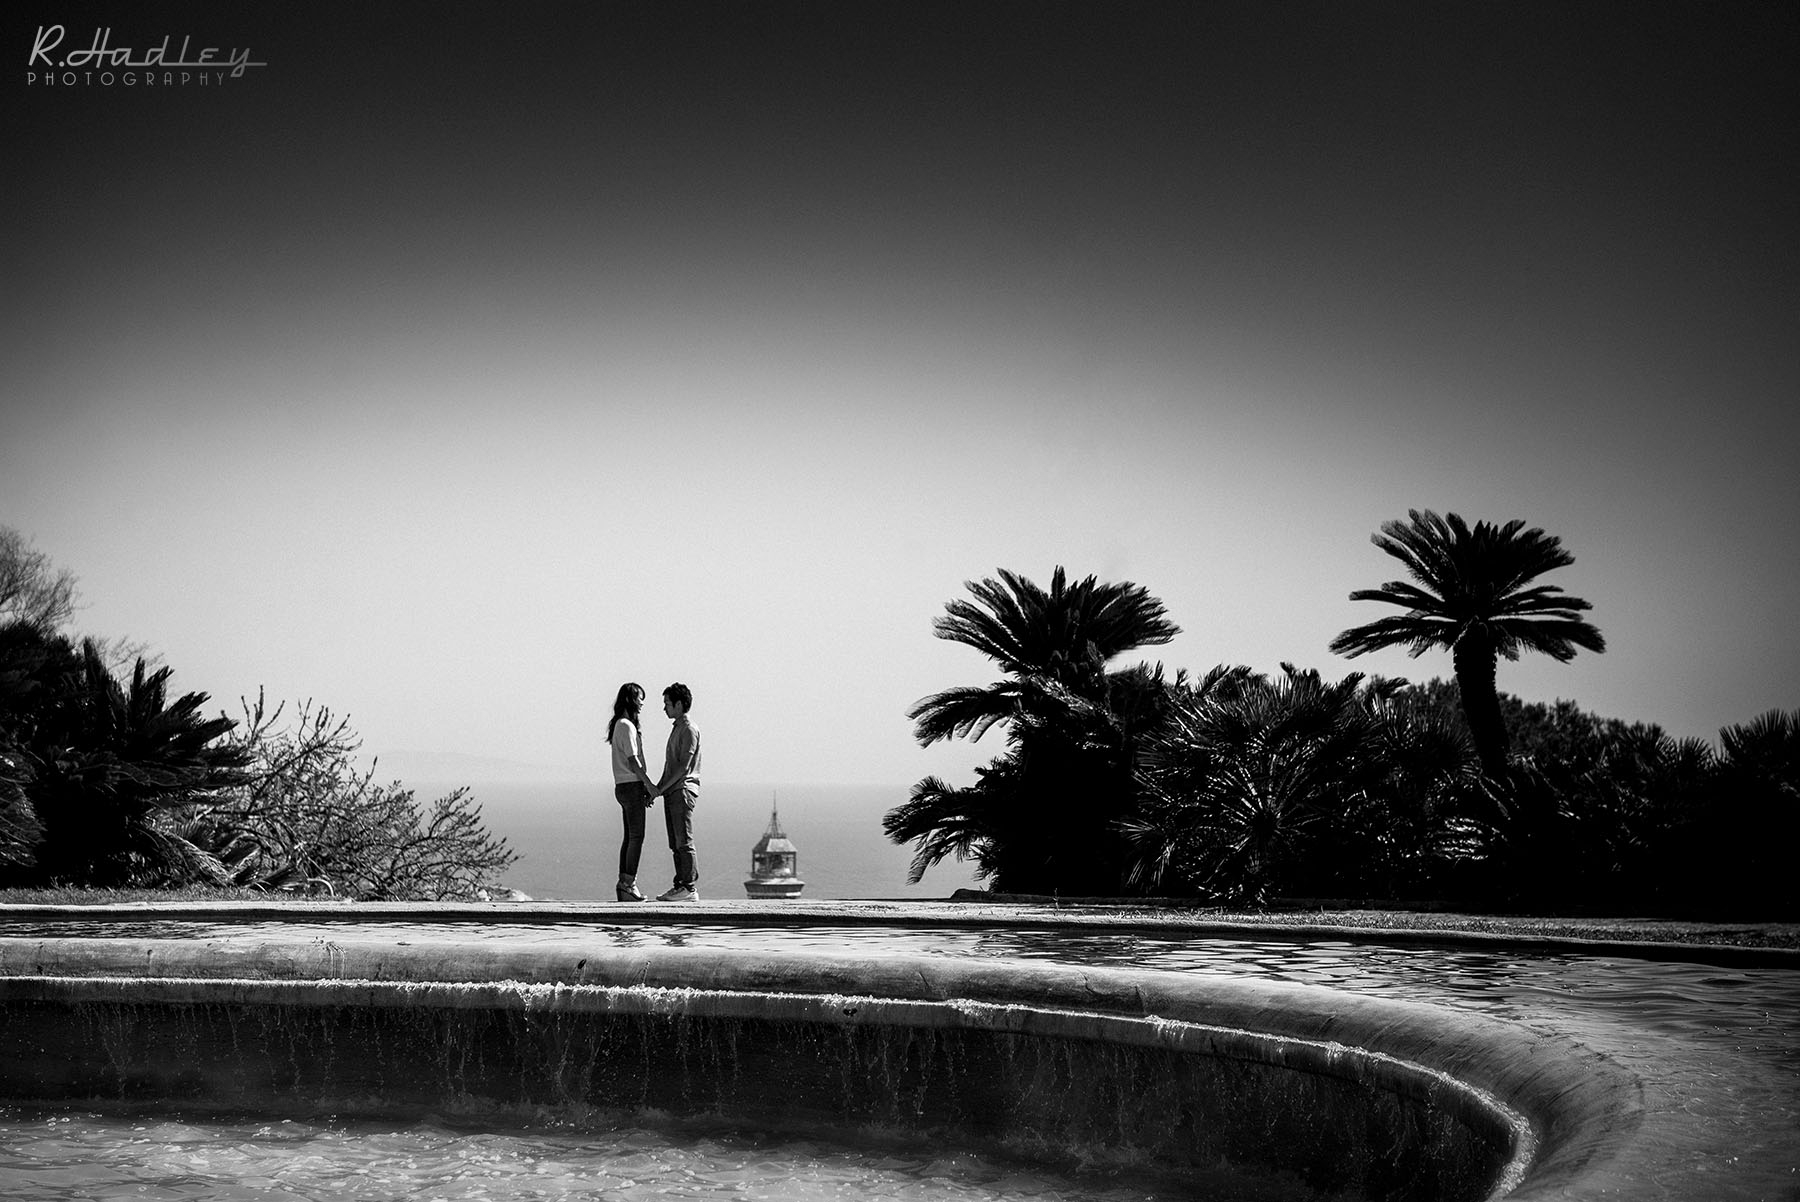 Portrait & engagement photo shoot in Barcelona at Montjuic Castle